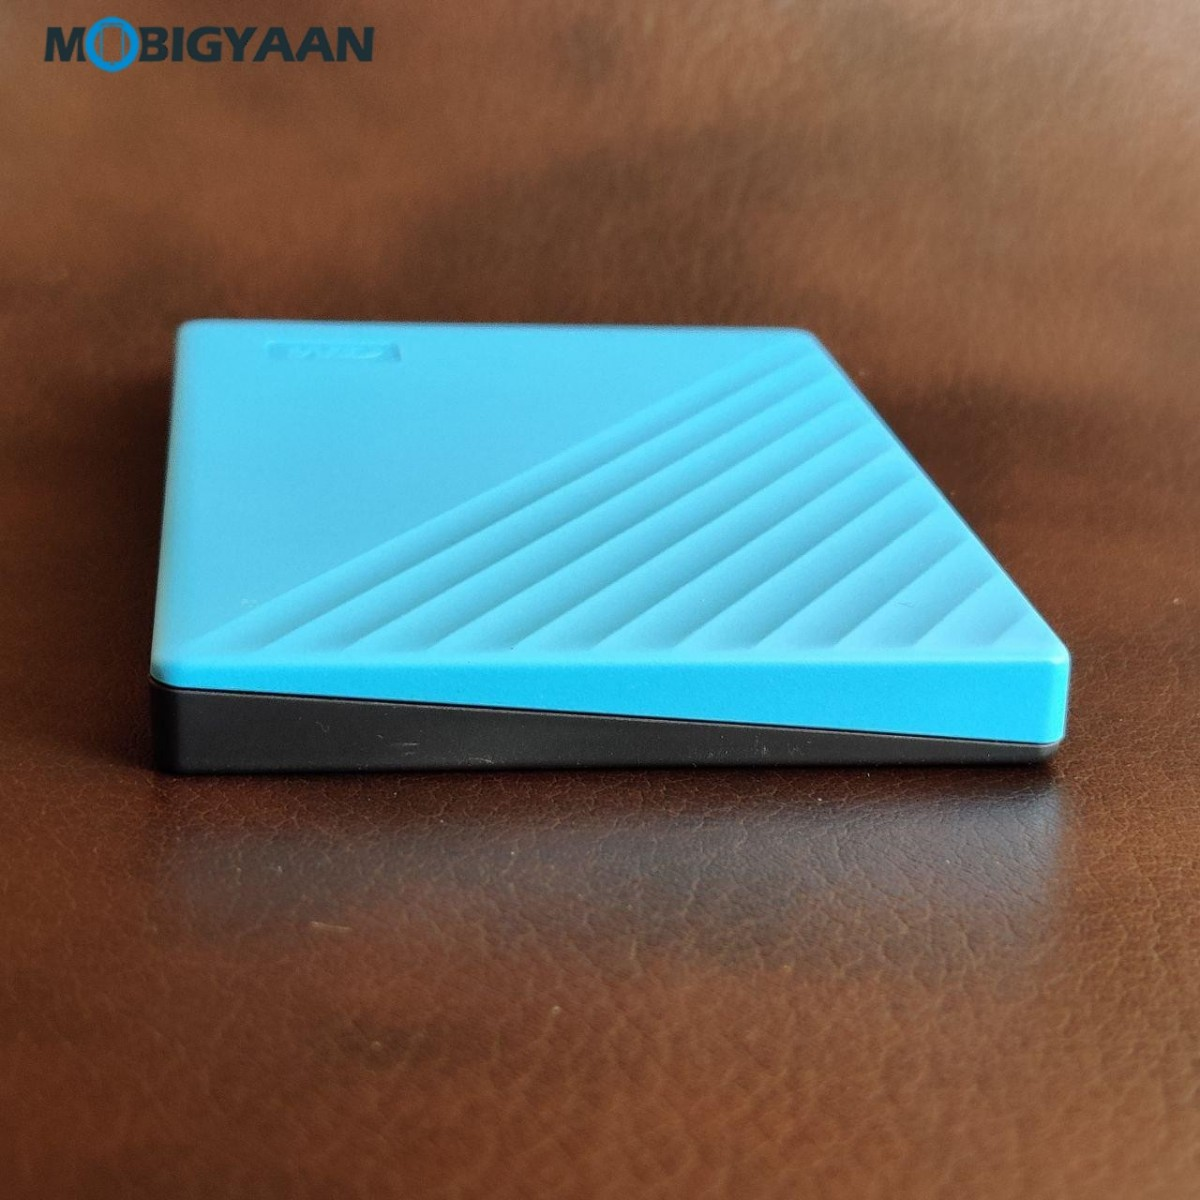 WD-My-Passport-Drive-Hands-On-Images-5